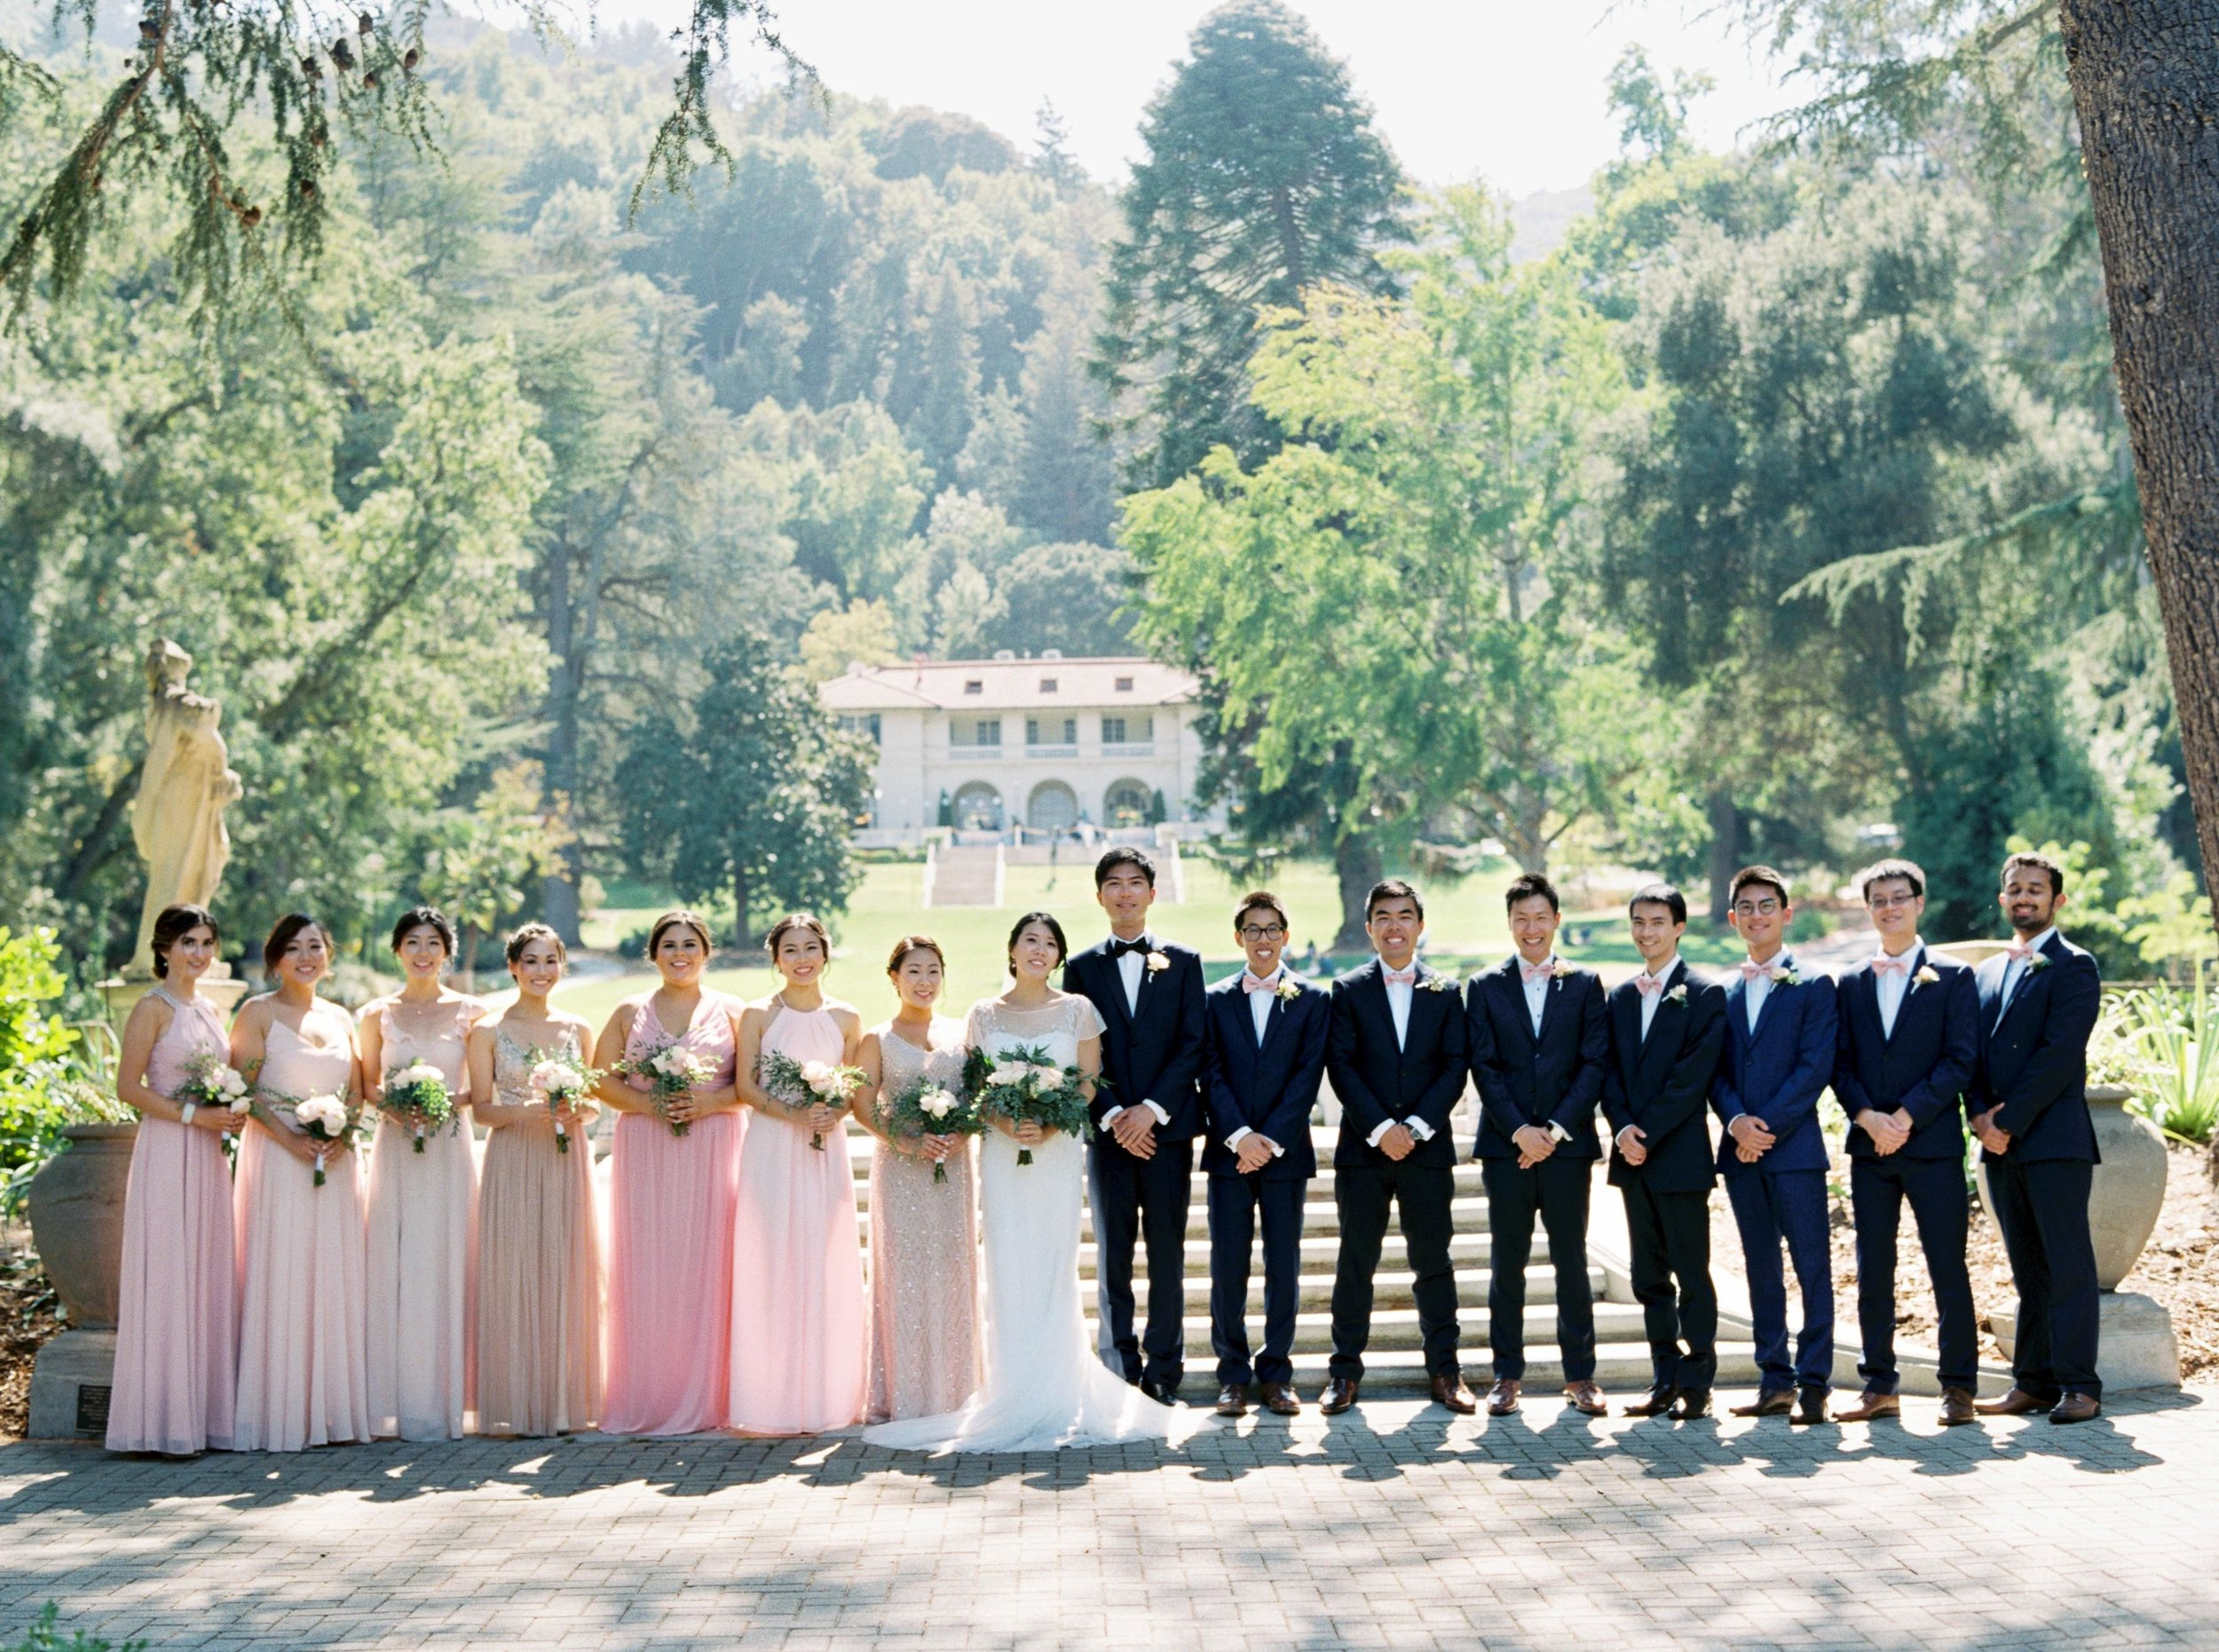 Villa_Montalvo_Wedding_Photographer_Videographer_San_Francisco070.jpg